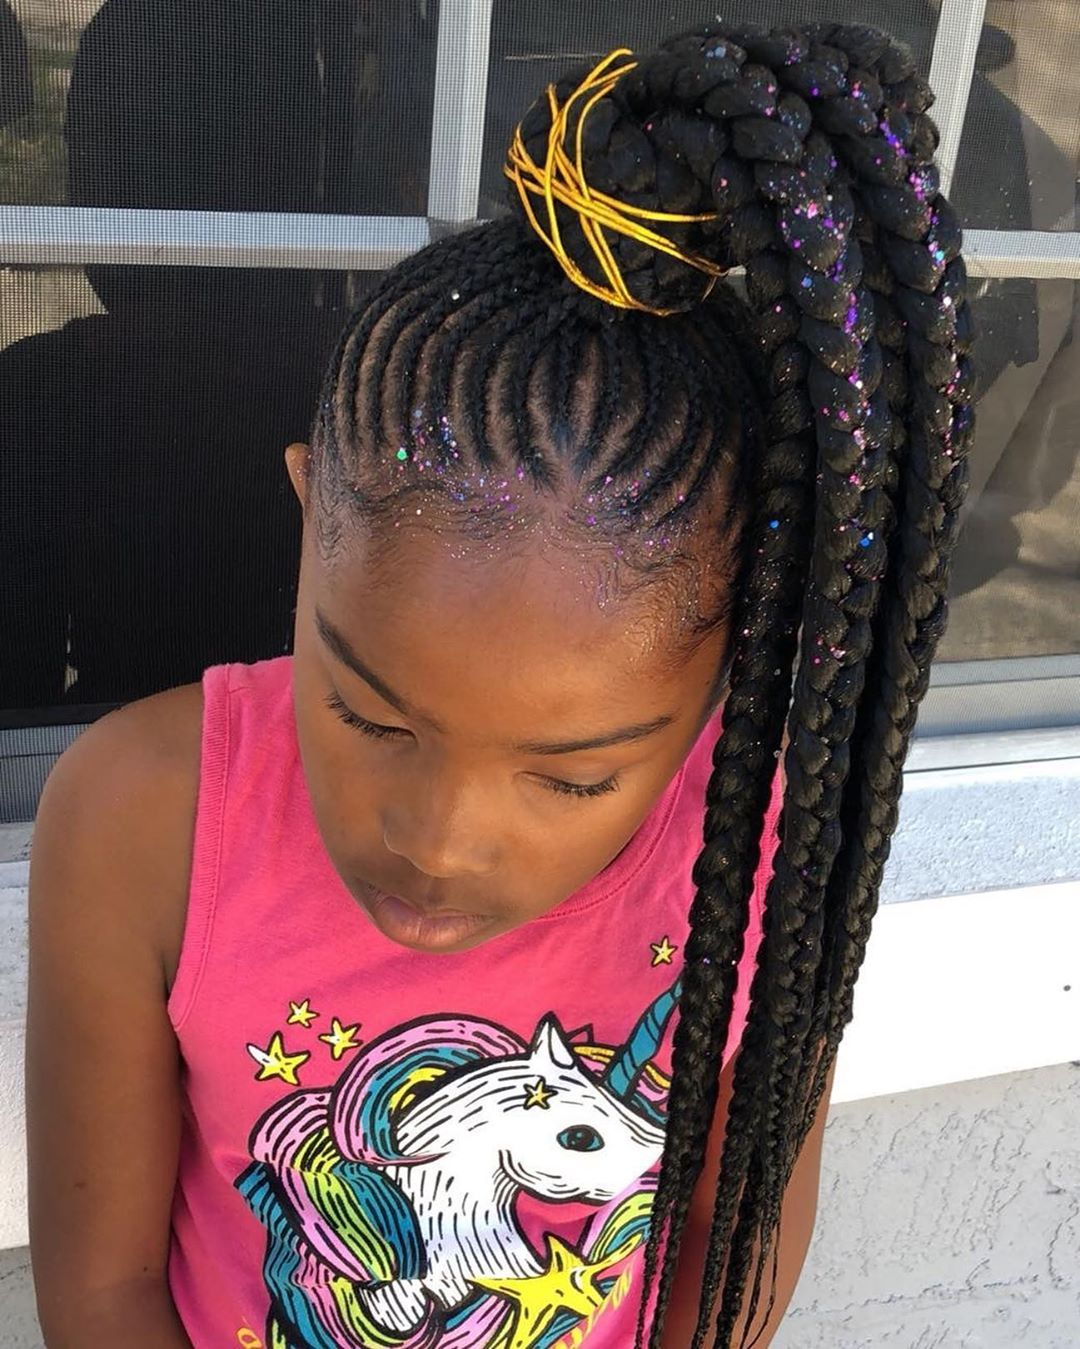 Cutest Hairstyles For Little Black Girls Little Girls Hairstyles African American Girls Hairstyles Kids Hairstyles Black Kids Hairstyles Little Girl Braids